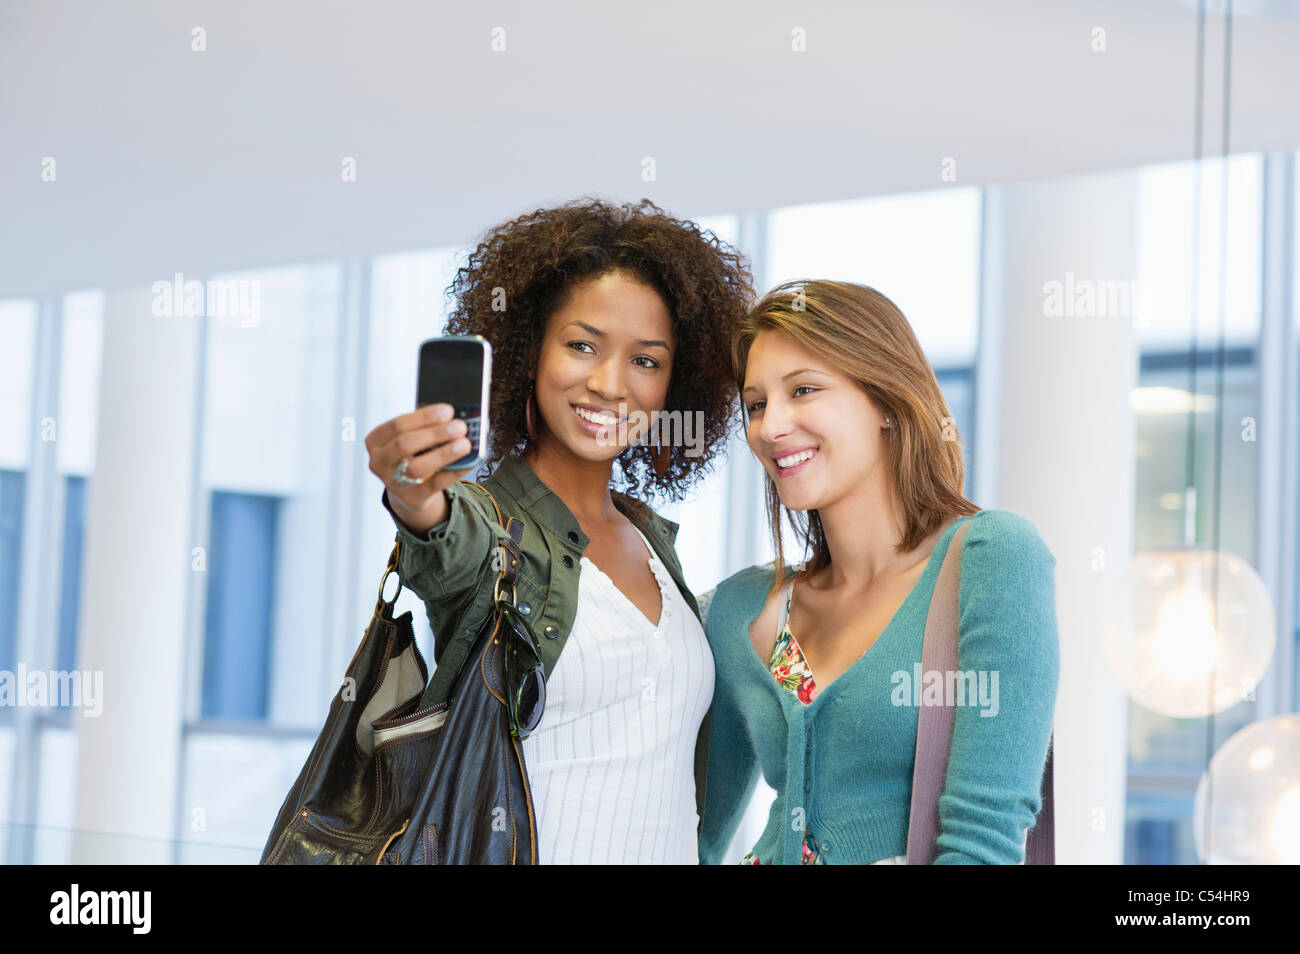 Two women taking photos of themselves - Stock Image